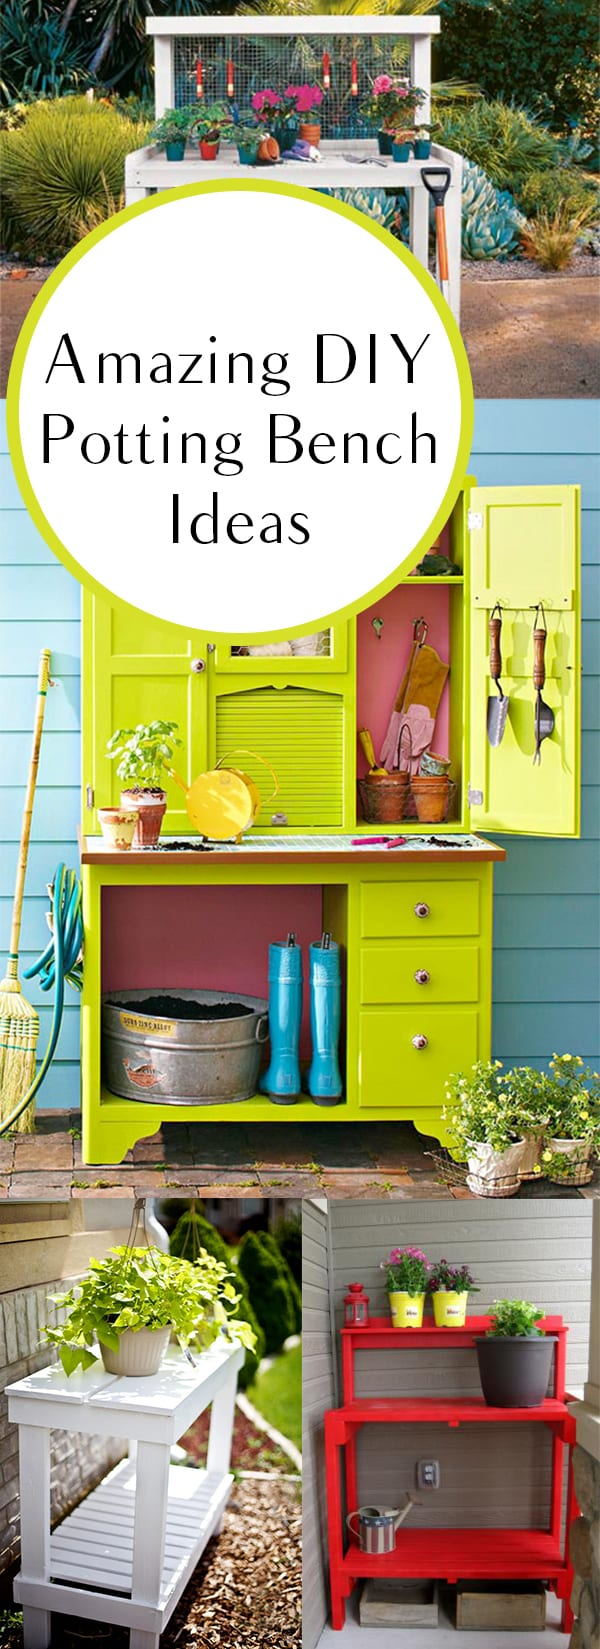 Potting bench ideas, potting shed, DIY potting bench, potting bench designs, popular pin, gardening, gardening hacks, how to garden, gardening hacks, DIY garden, outdoor living, outdoor projects, outdoor DIY